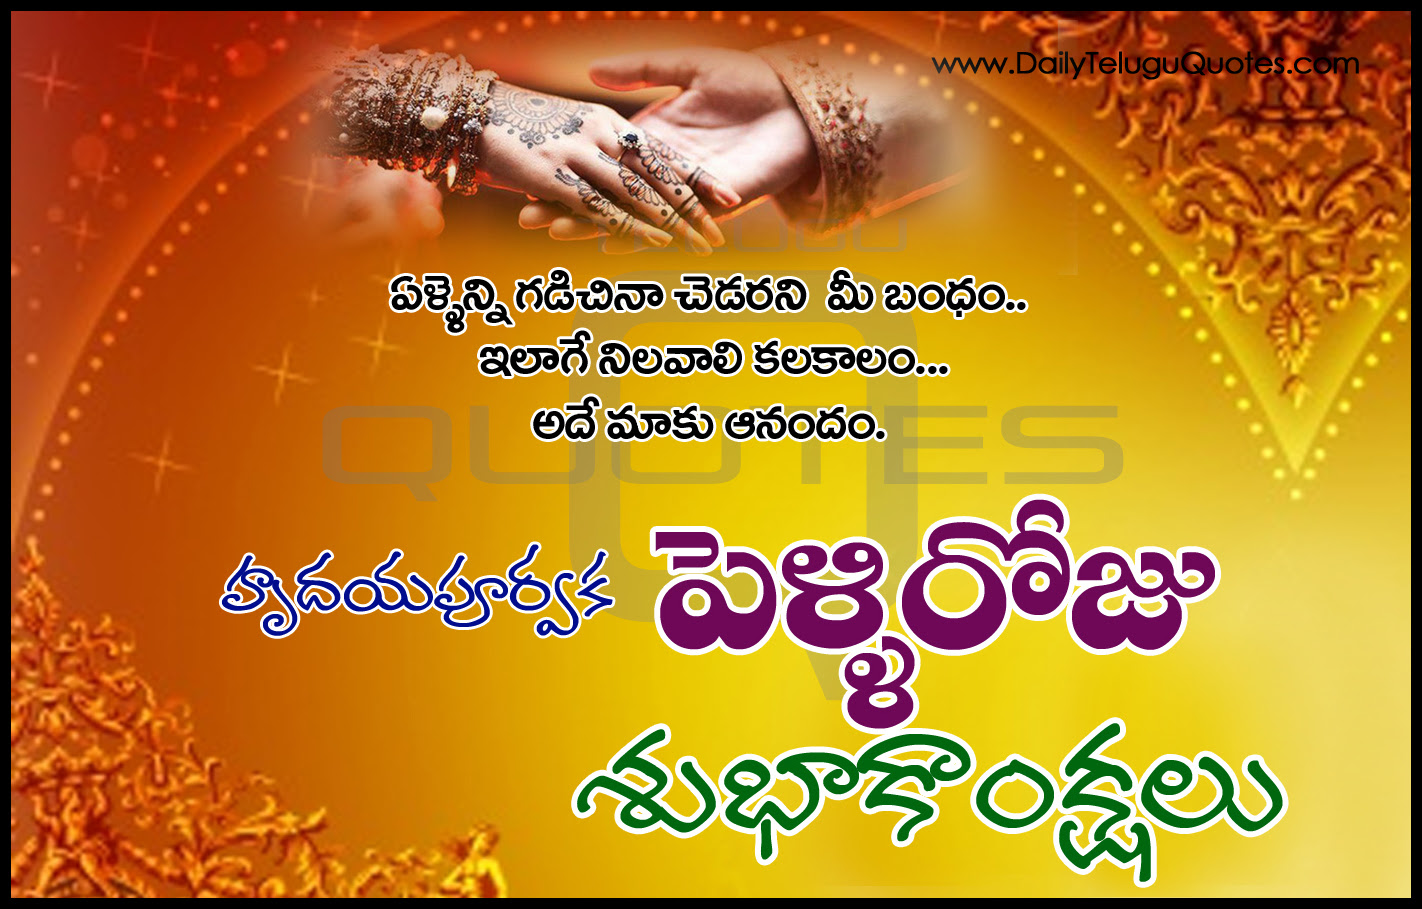 Happy Marriage Day Greetings In Telugu With Images Inspirational